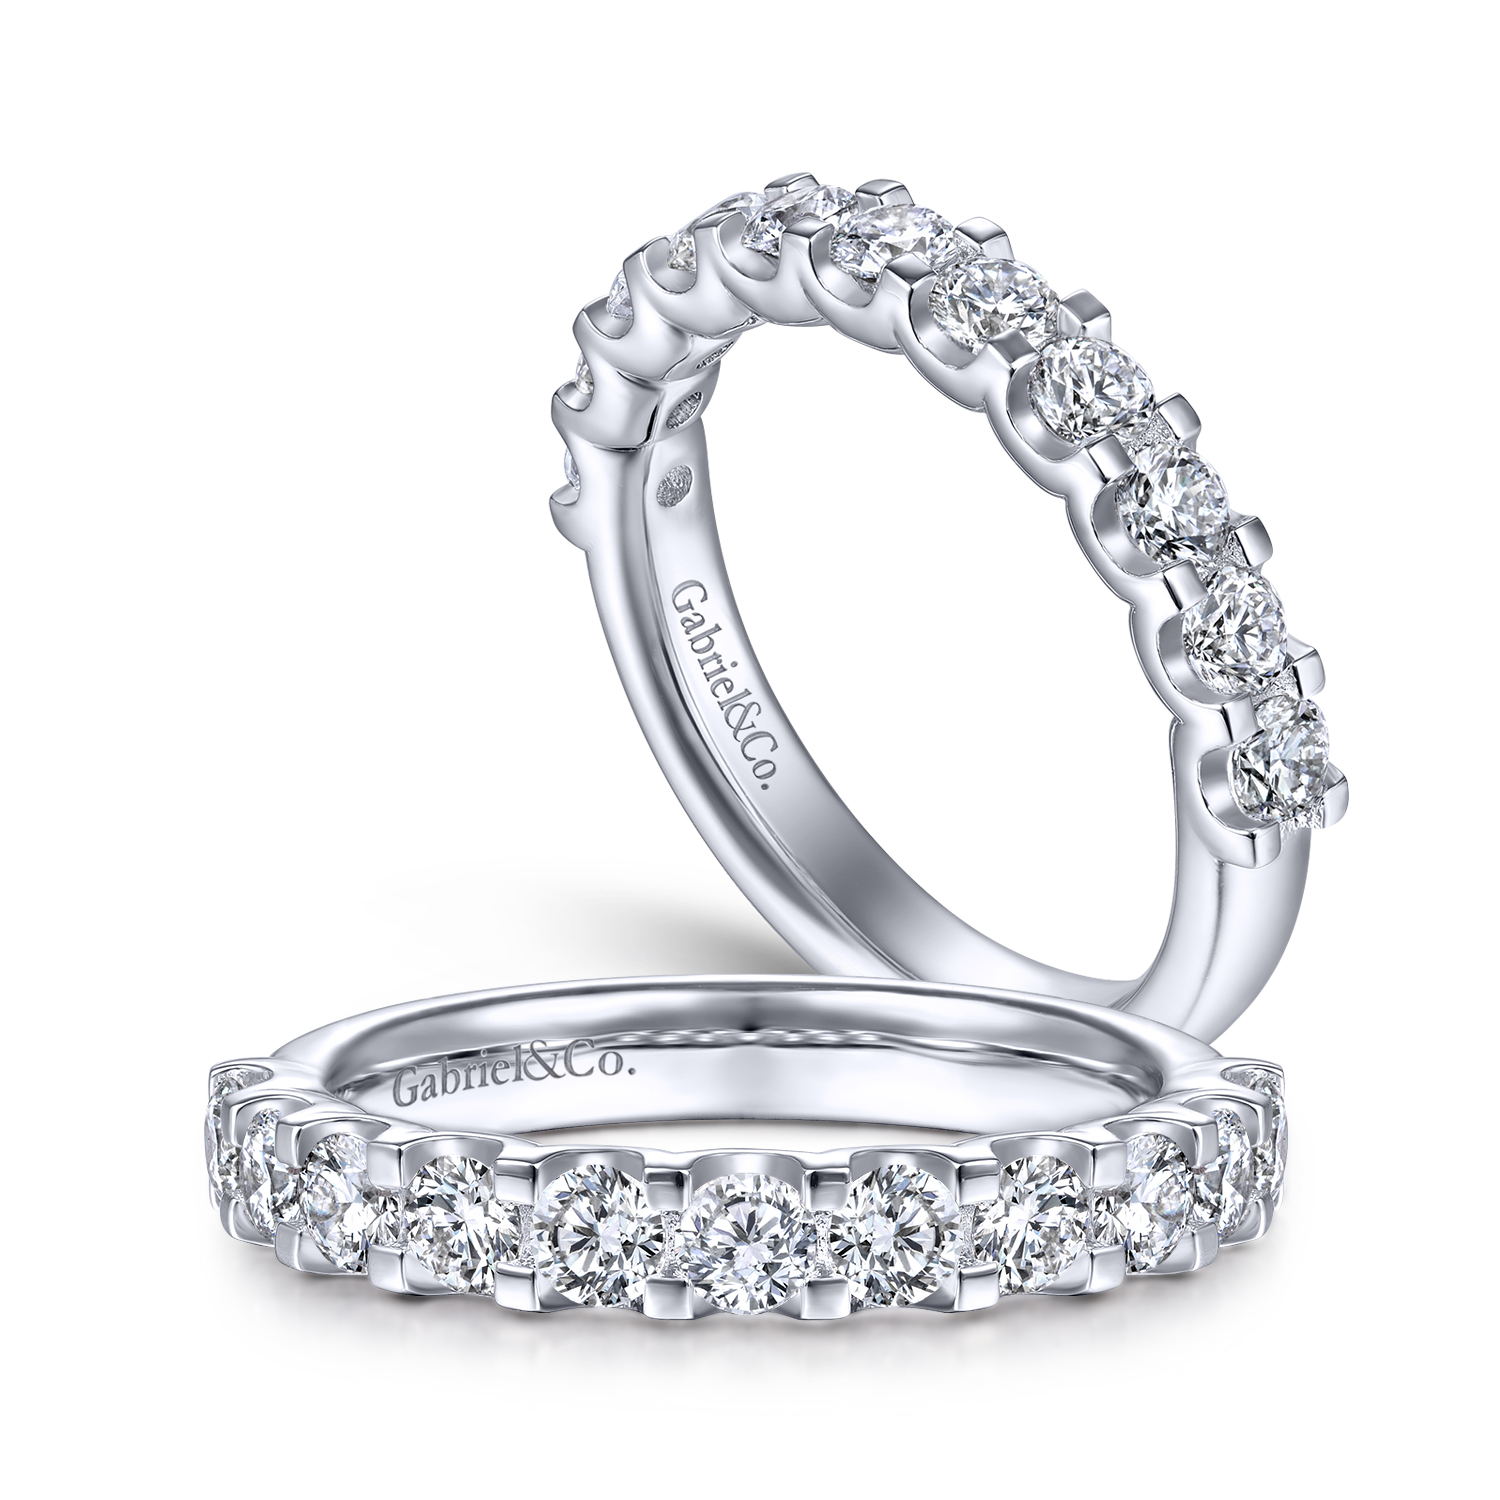 Eternity Bands: One Ring, Many Diamonds